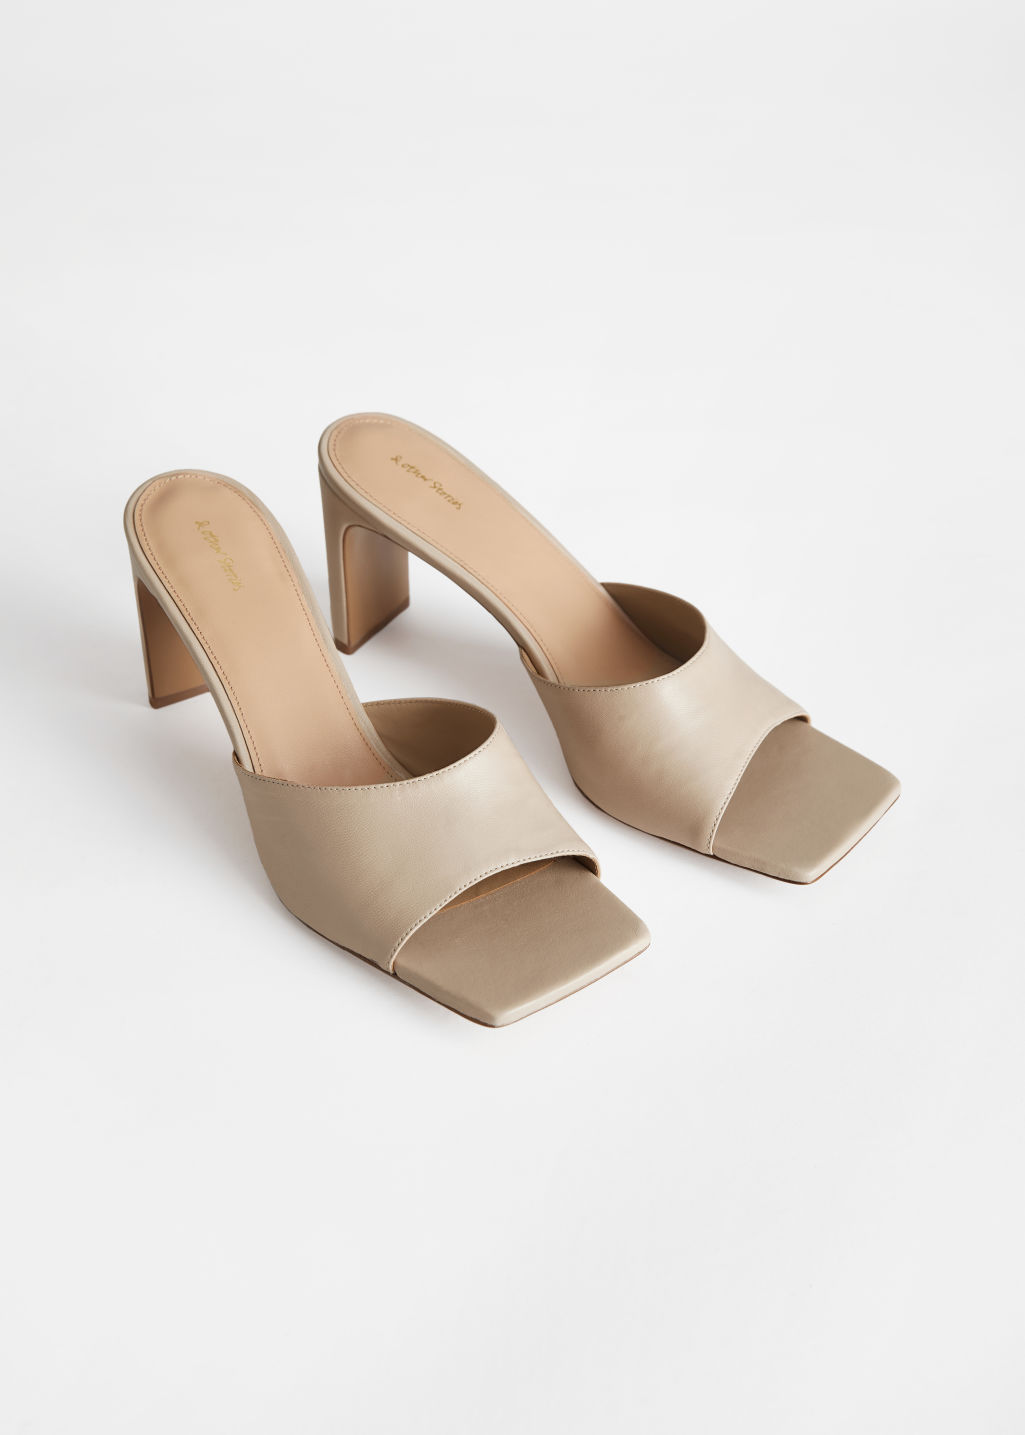 StillLife Front Image of Stories Heeled Leather Square Toe Sandals in Beige